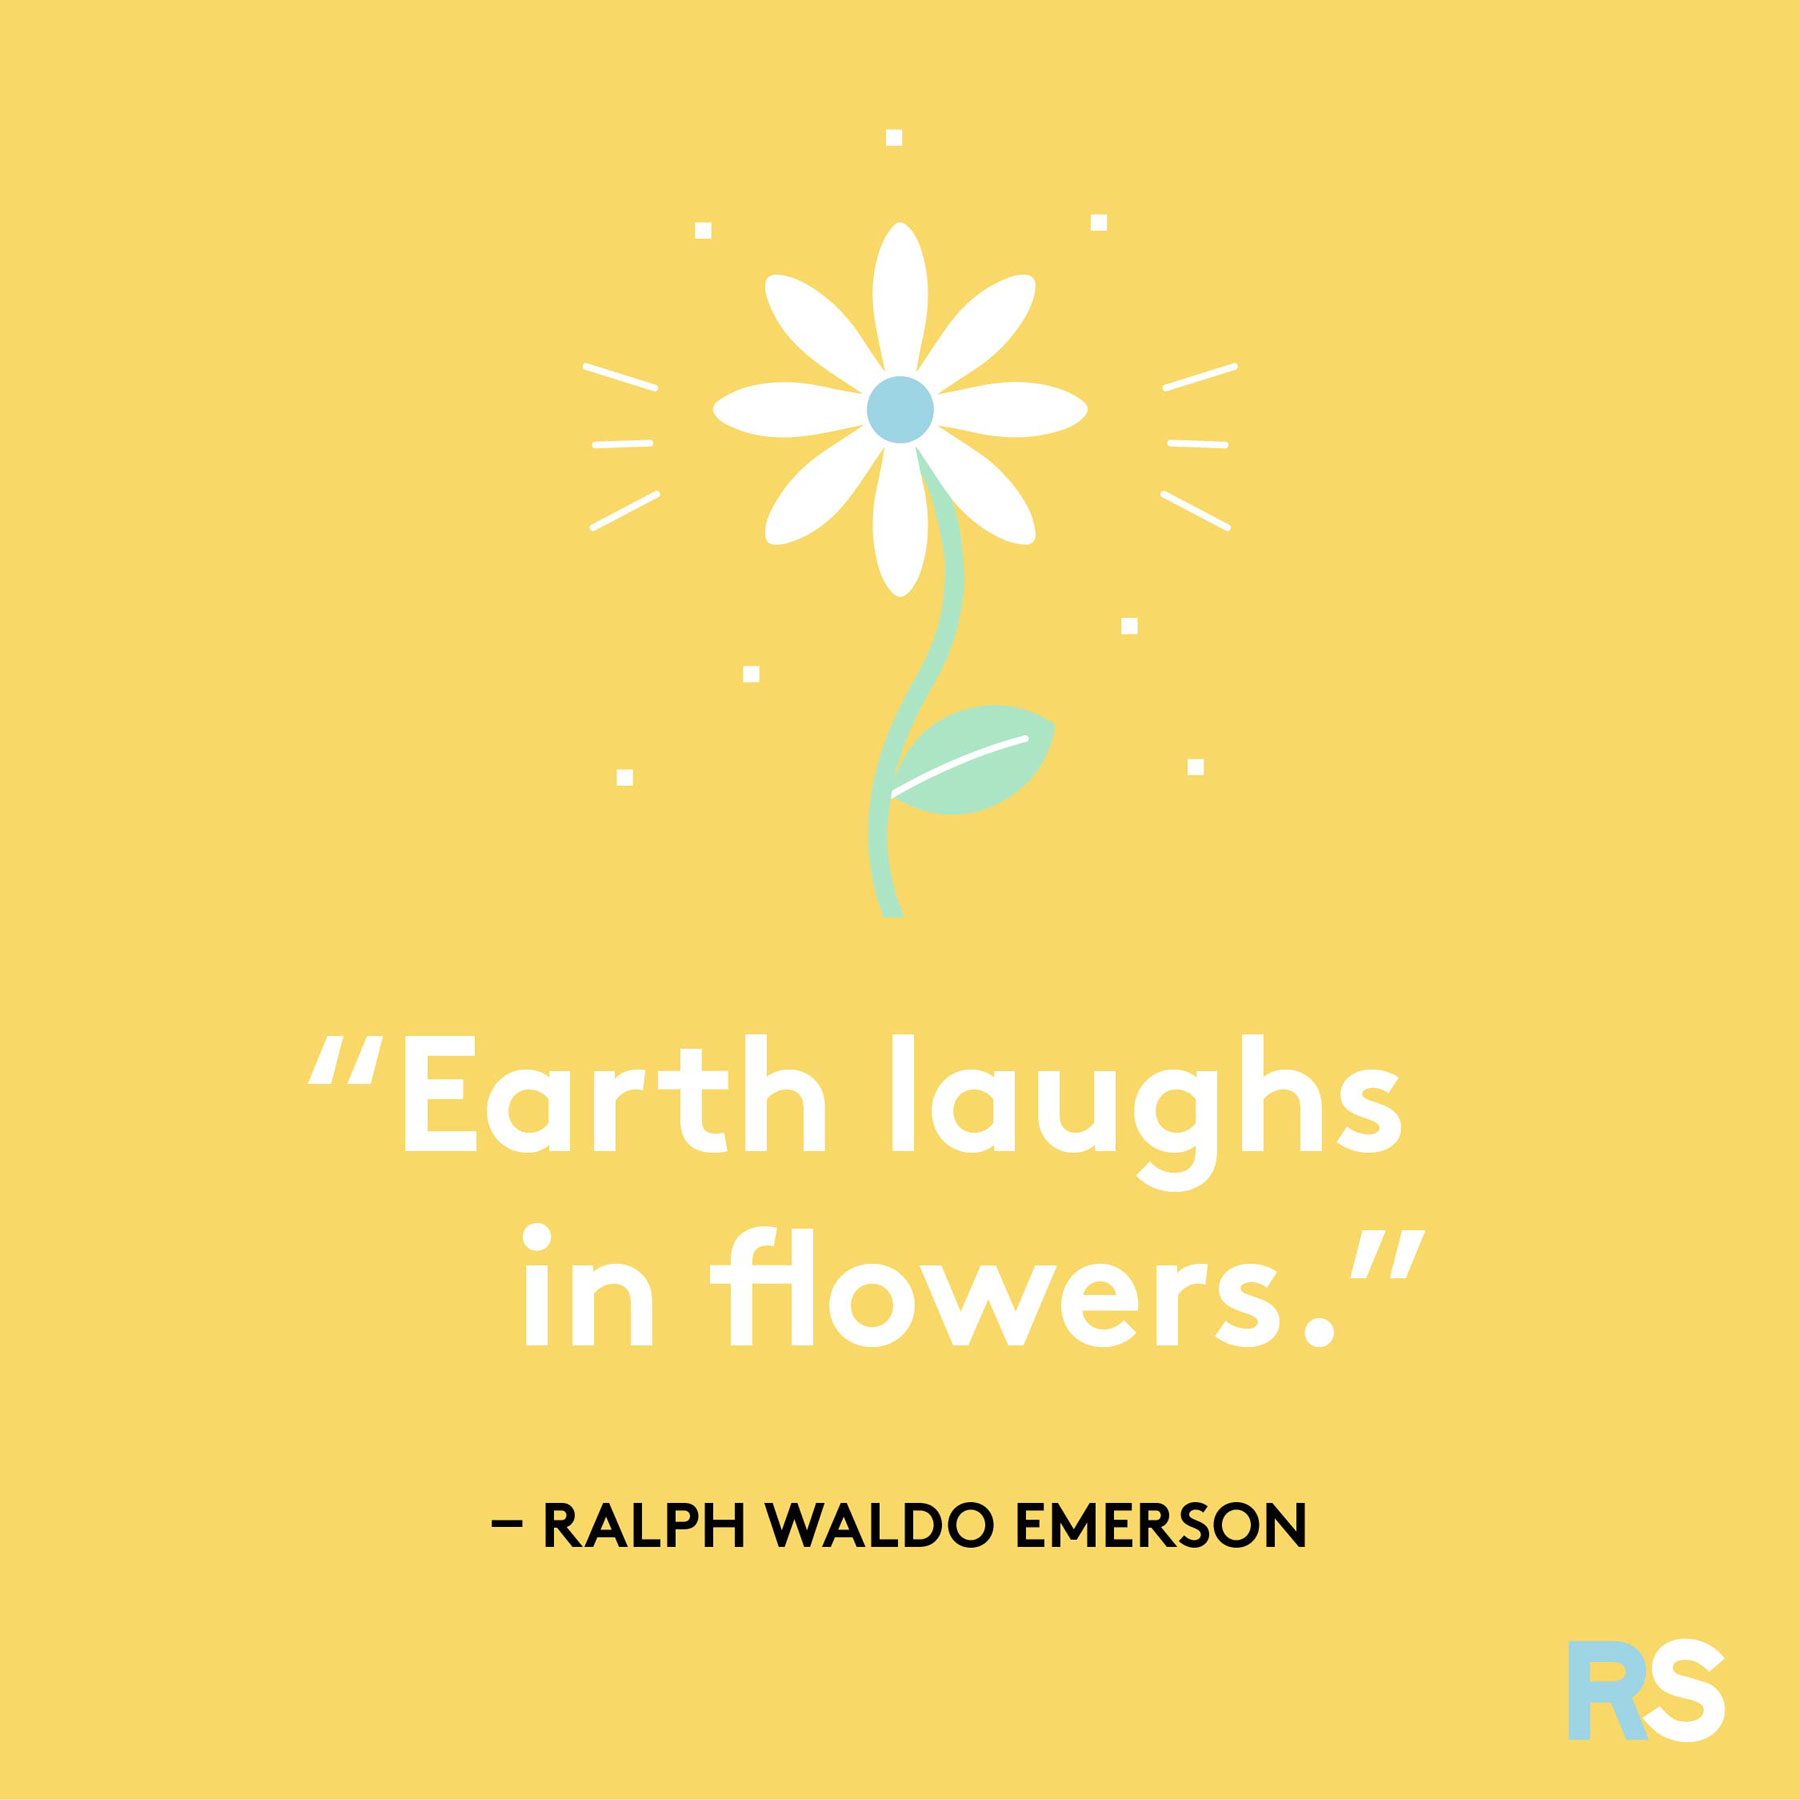 Easter quotes, captions, and messages - Ralph Waldo Emerson quote